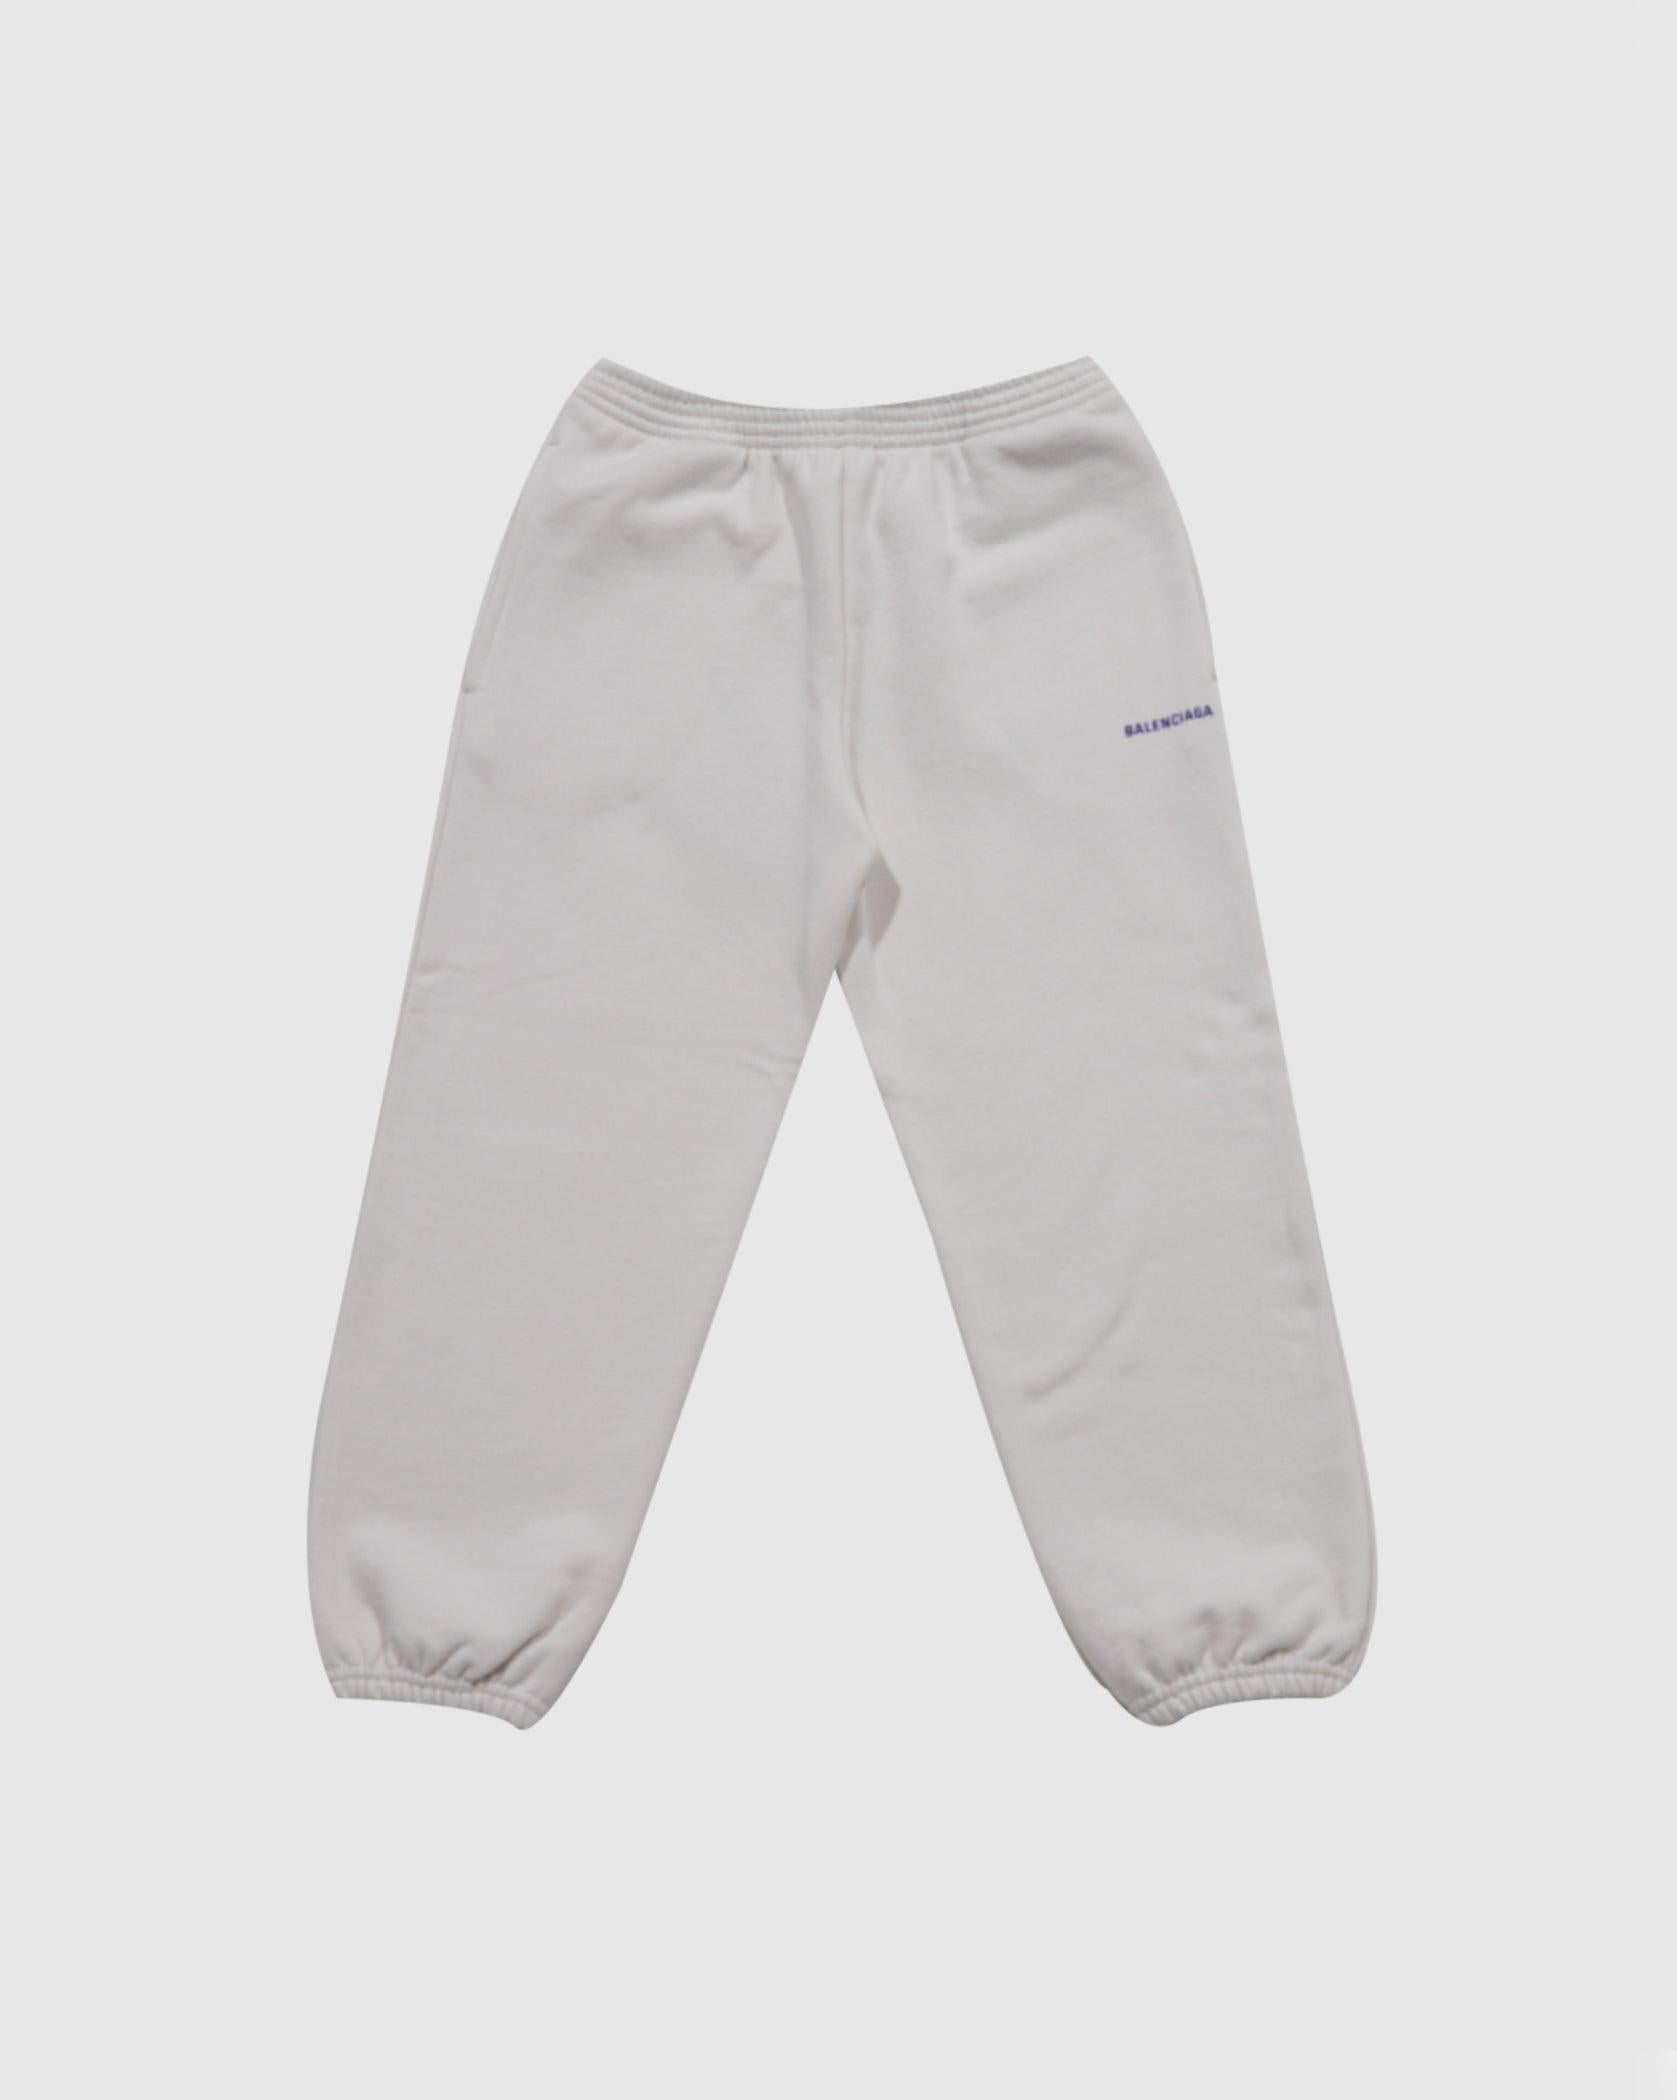 CHILDREN'S JOGGING PANTS